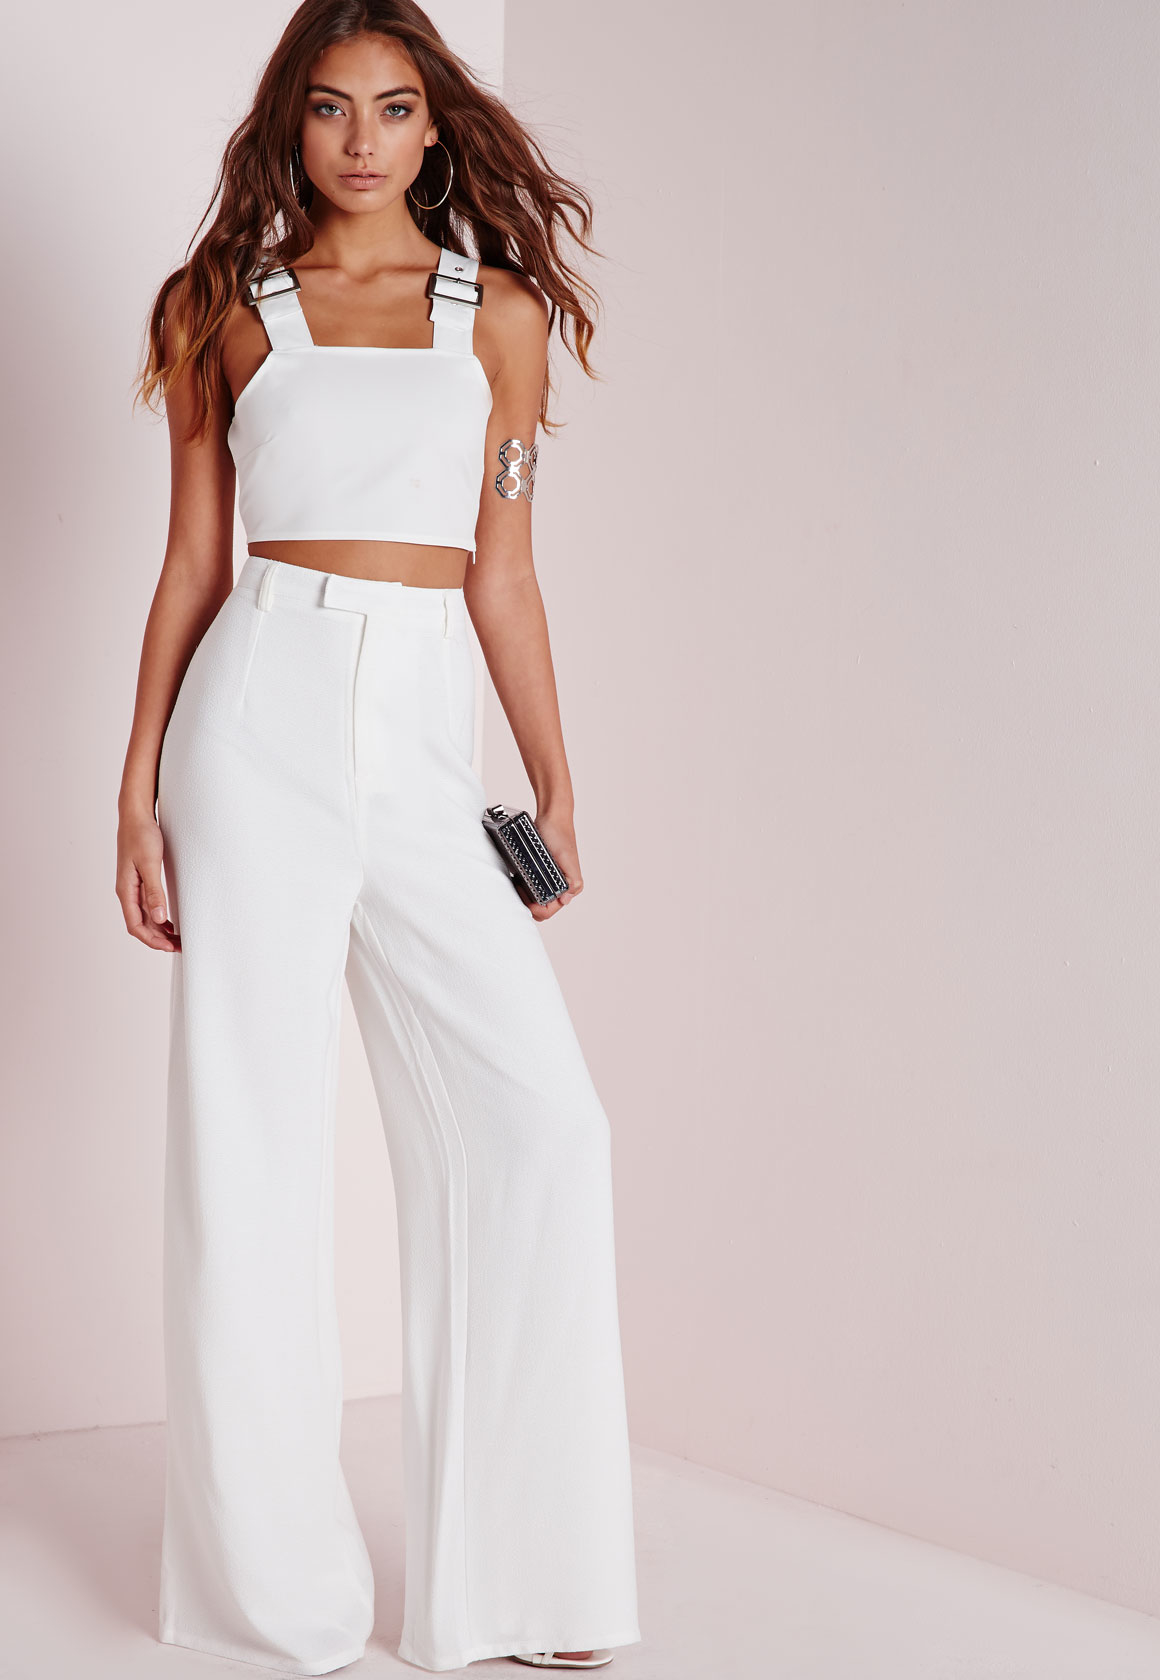 Shop for Women's Designer Cropped Pants at FWRD. Find stylish Wide Leg Cropped Pants, Black Cropped Pants, White Cropped Pants & more from top designers today!